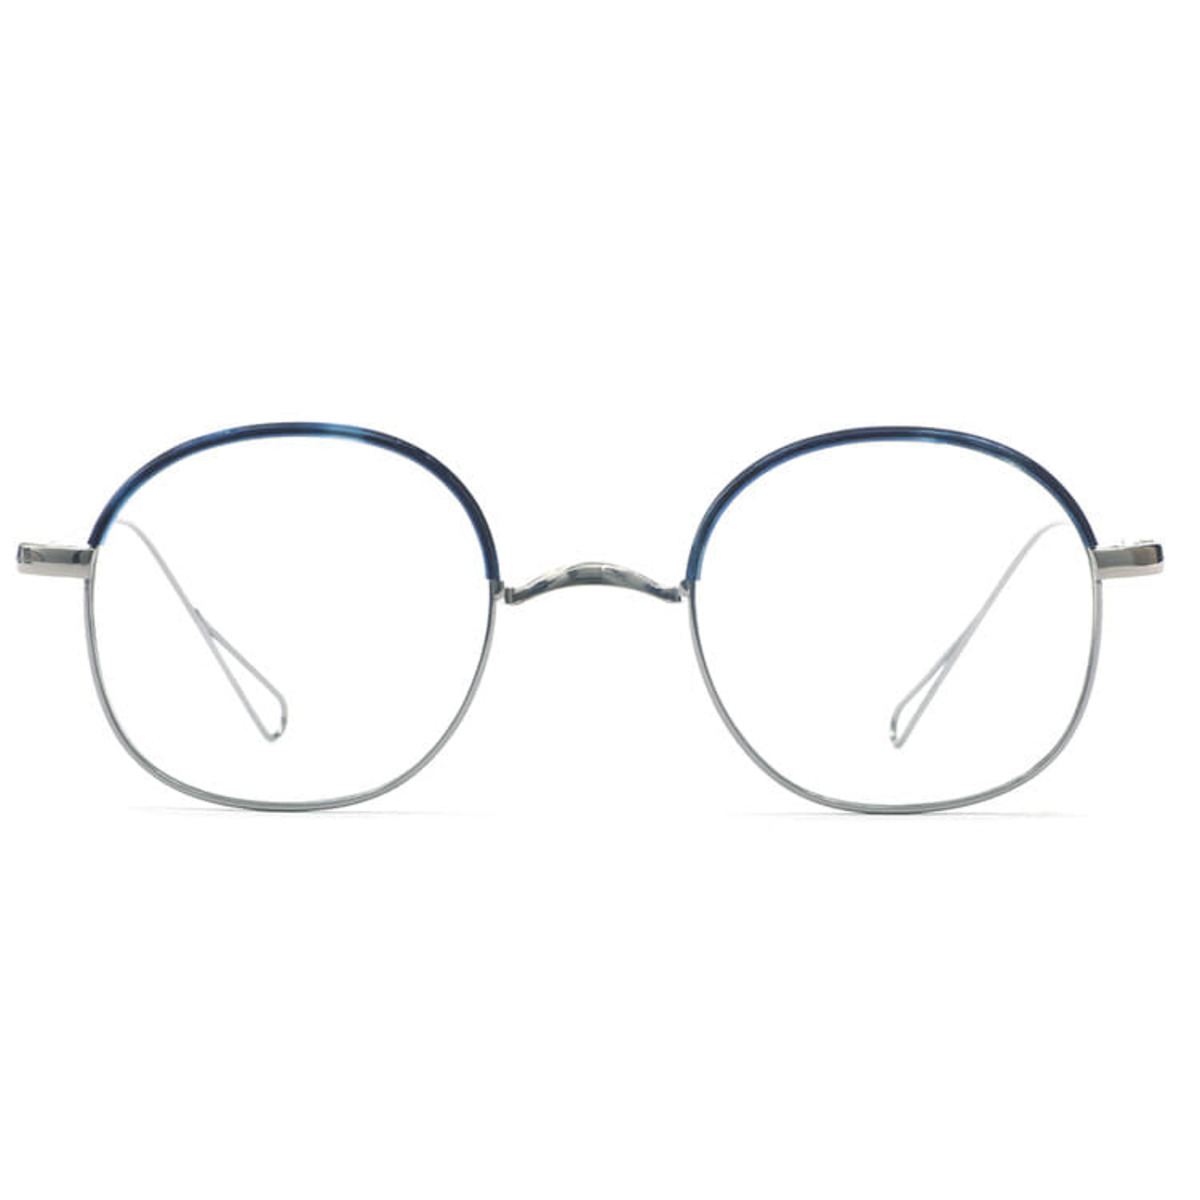 Glasses SC-Hem04 silver/blue